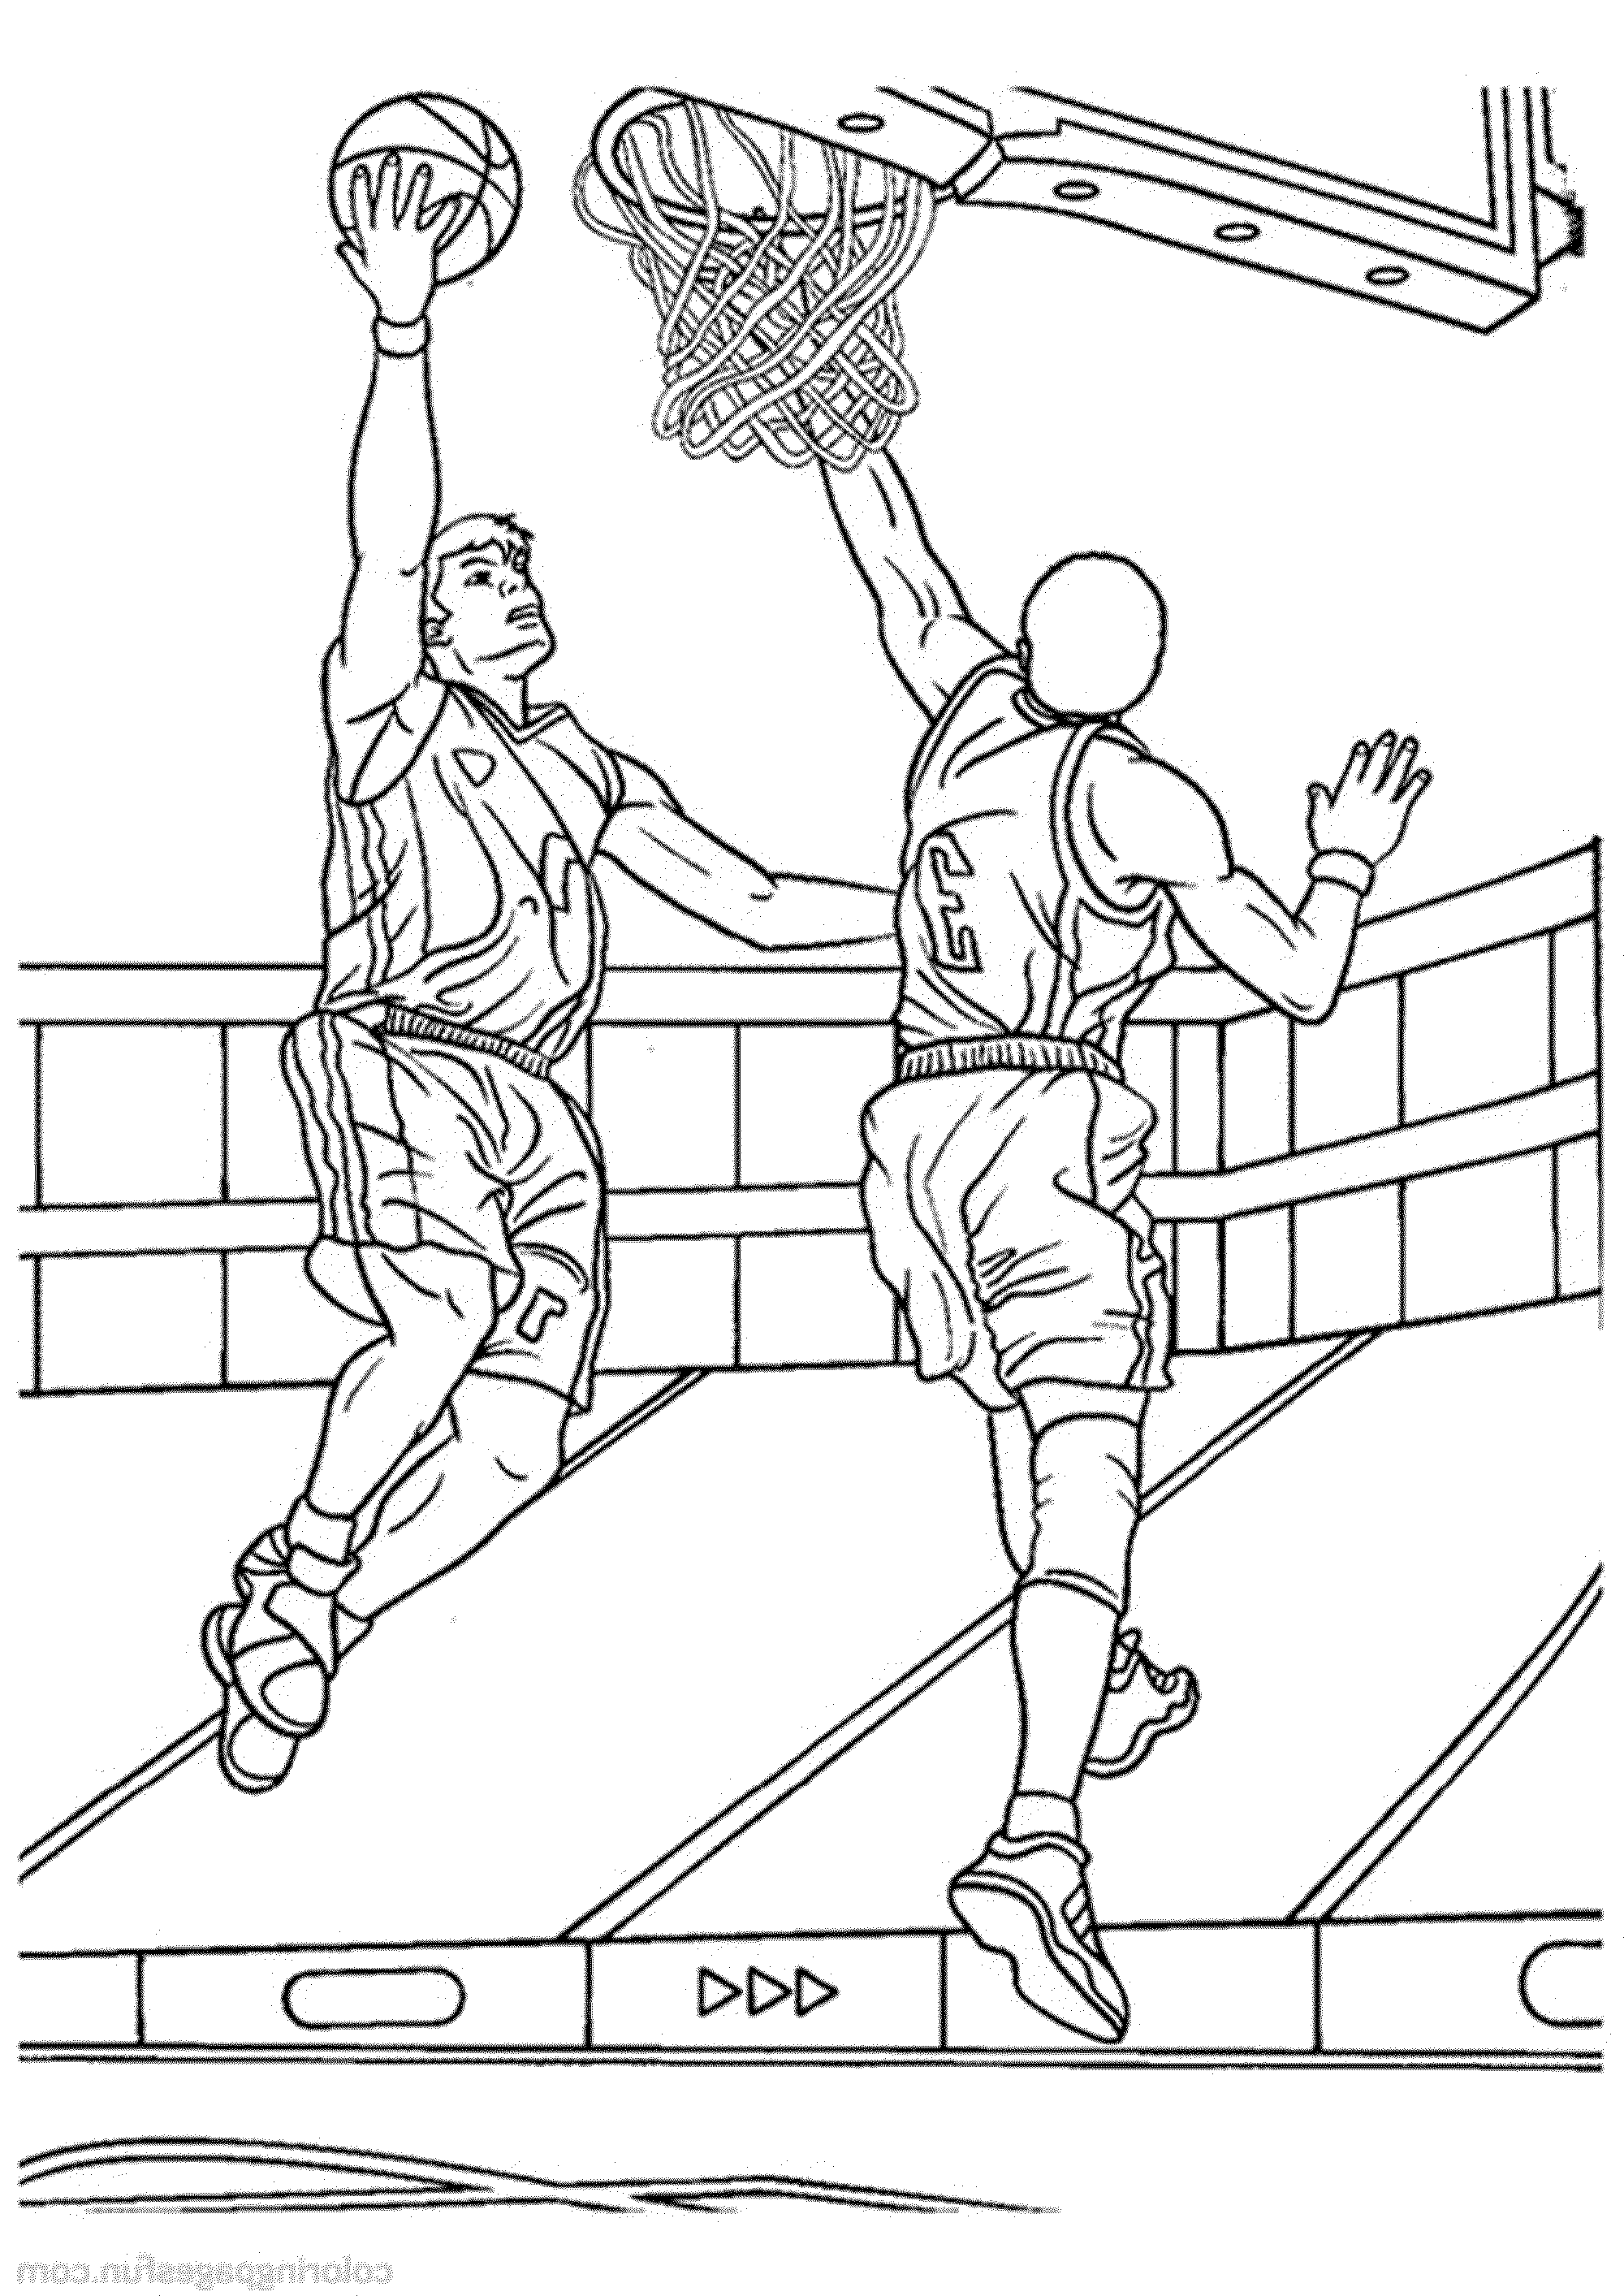 2000x2827 Fortune Basketball Coloring Pages To Print